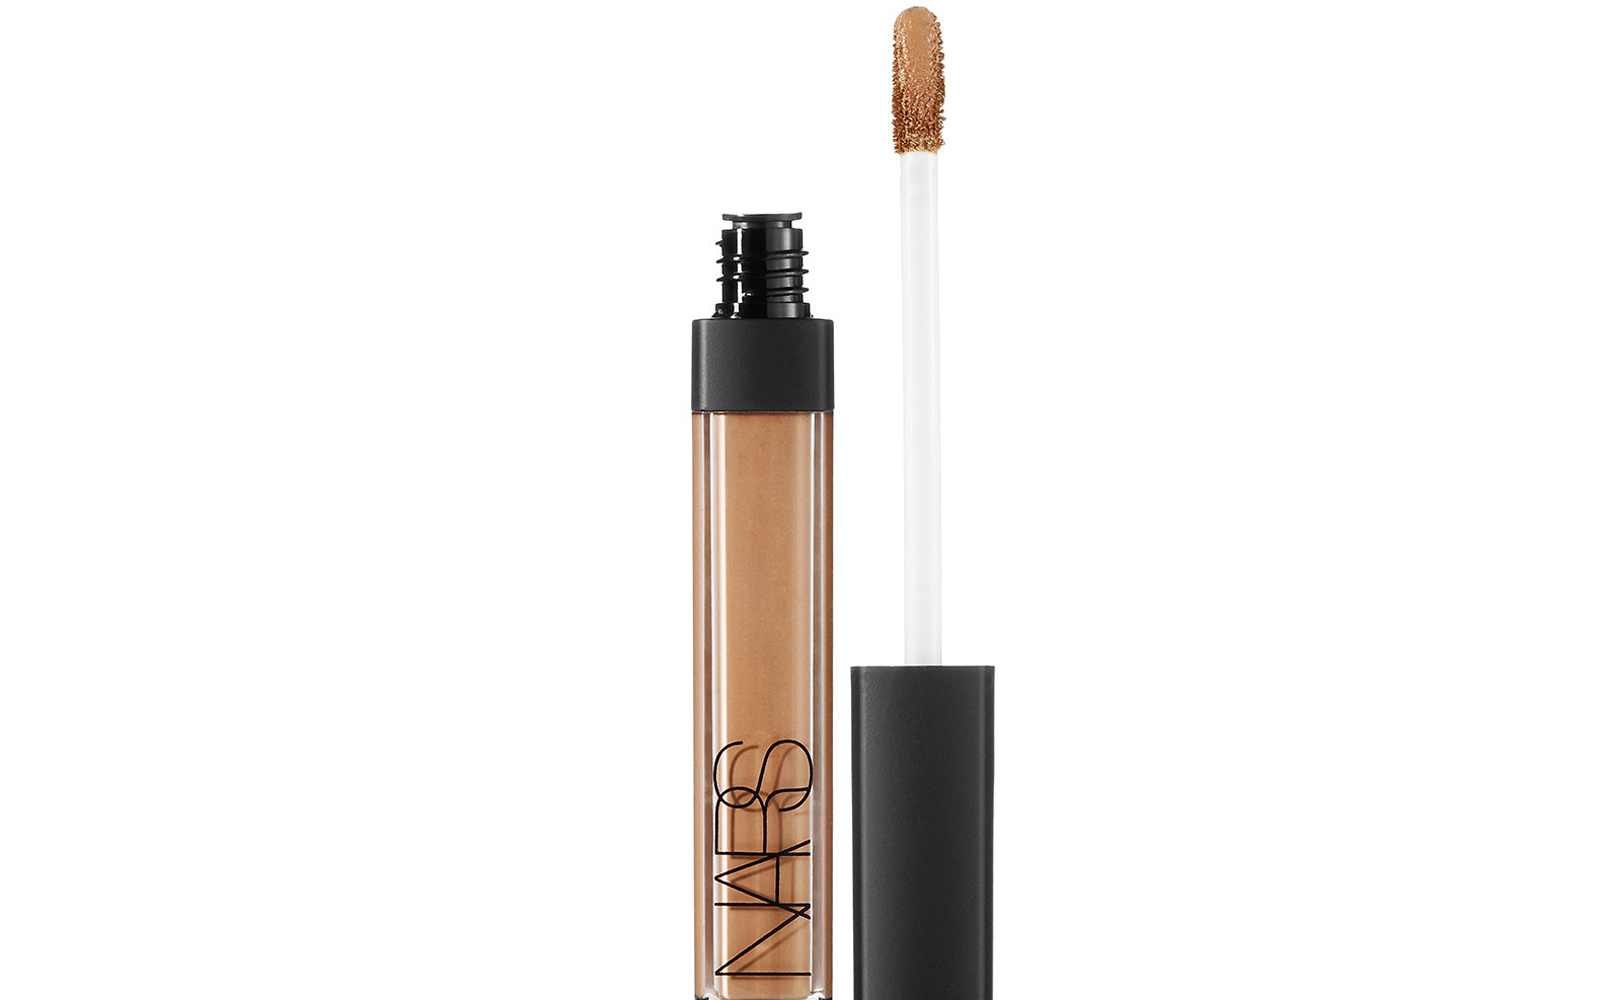 This Is the Best-selling Concealer From Sephora